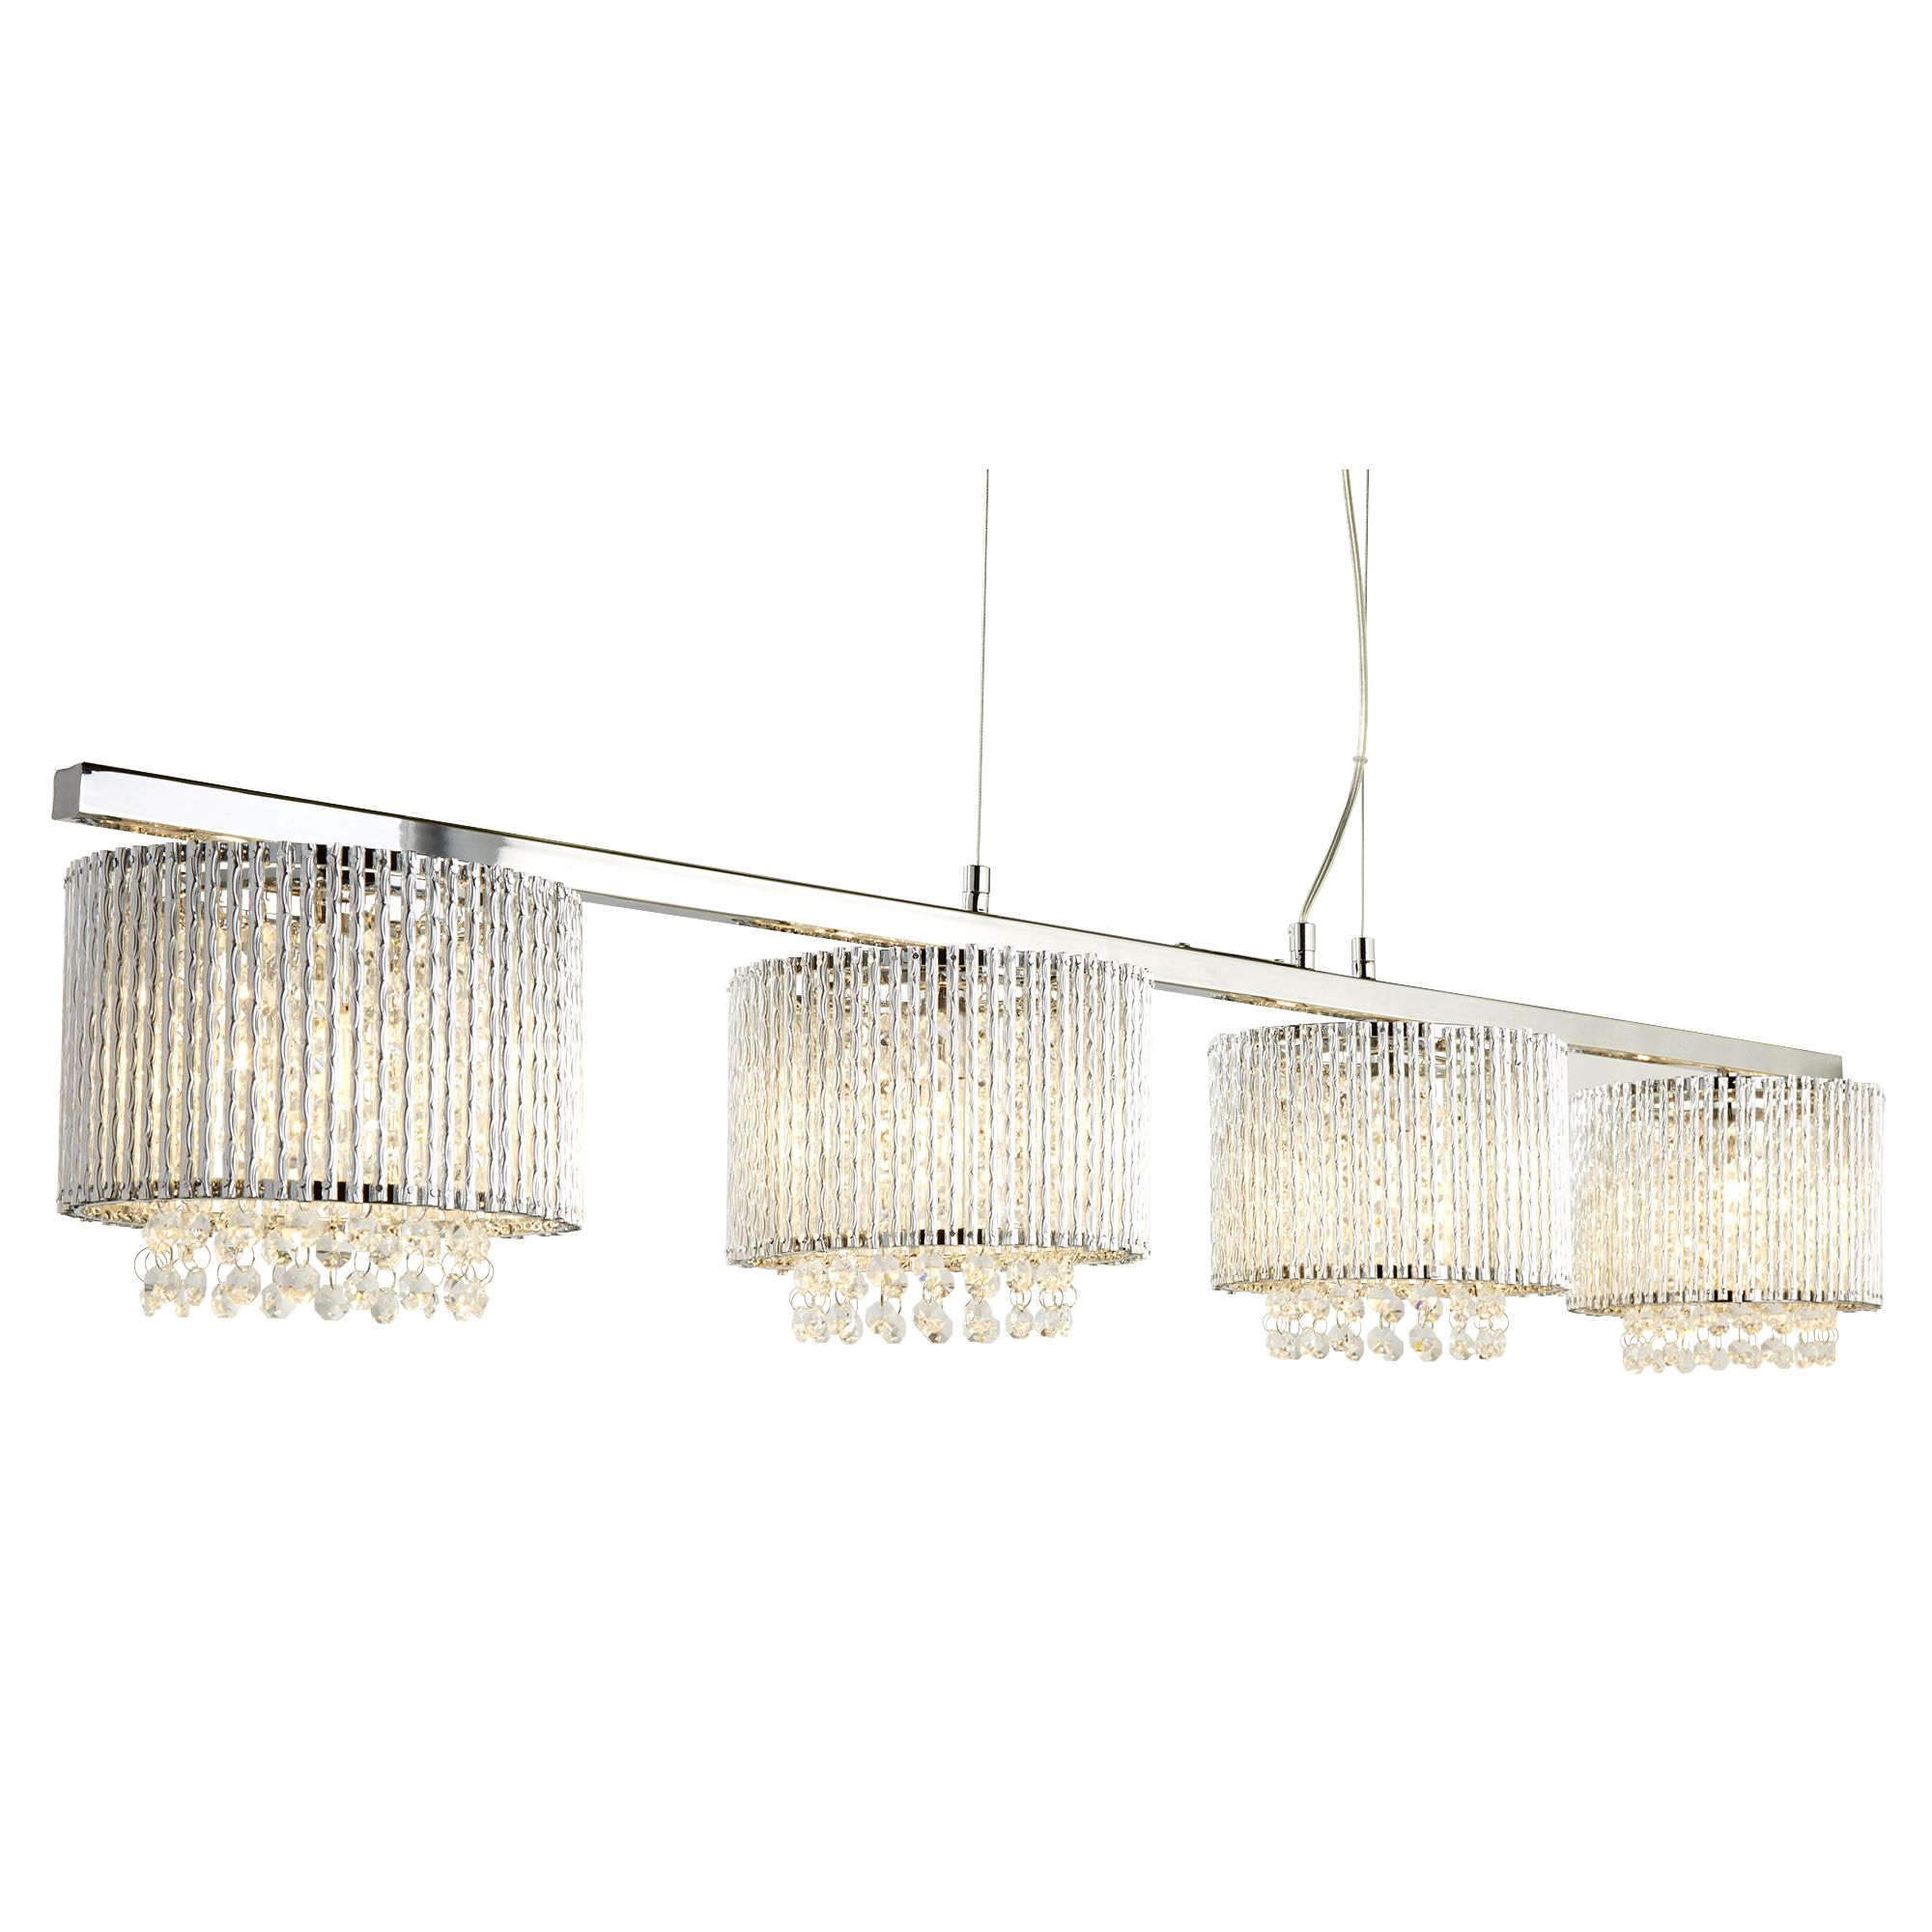 Chrome 4 Light Pendant Ceiling Bar, Clear Crystal Drops, Aluminimum Twisted Tube